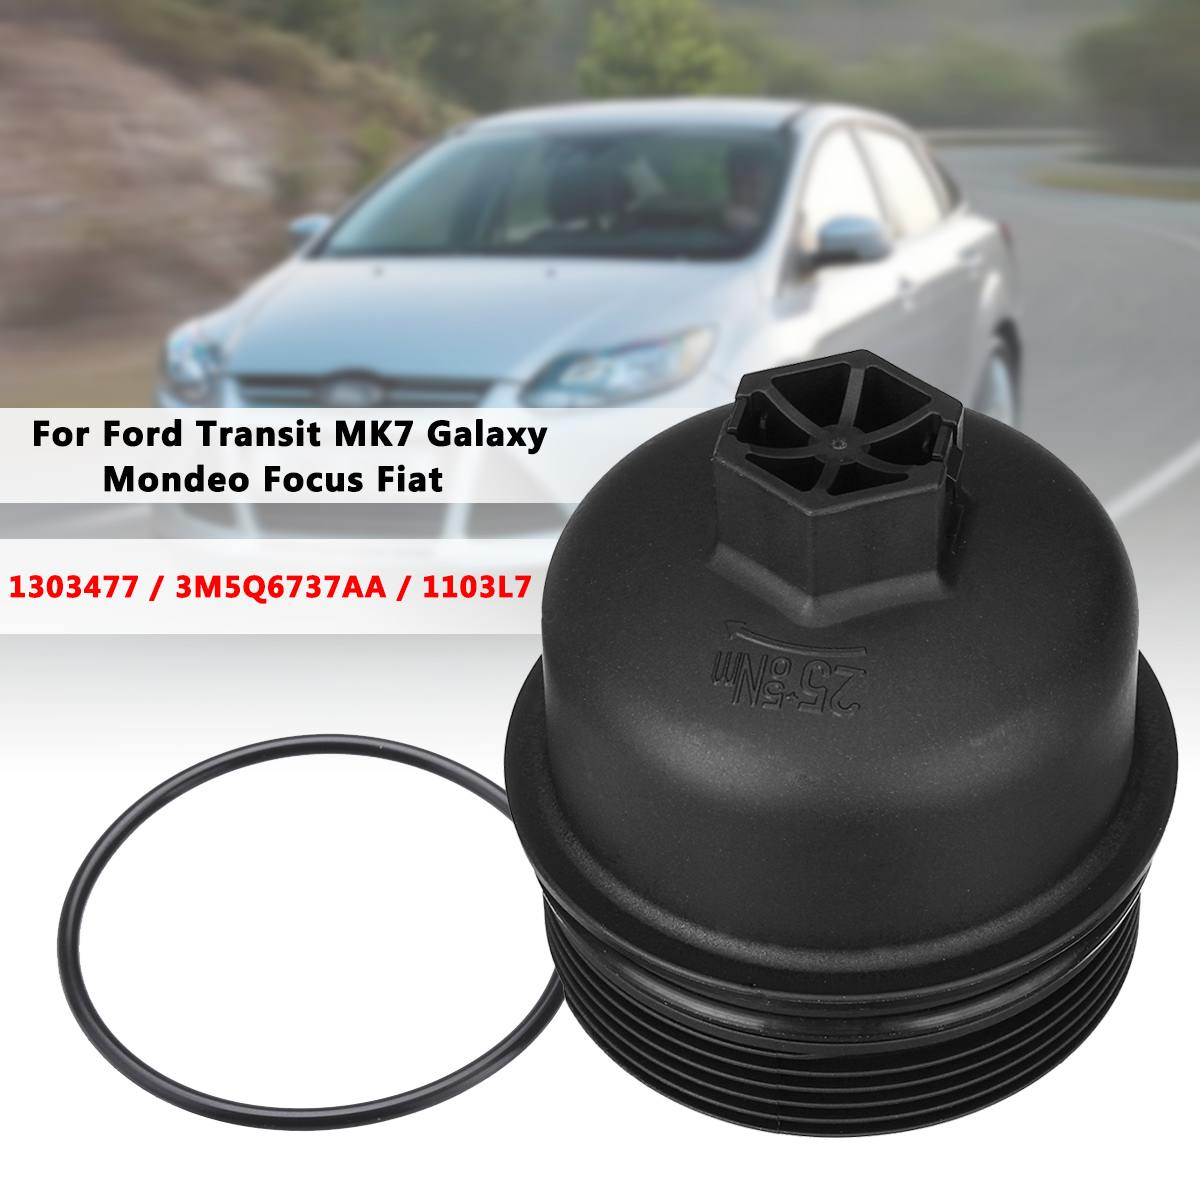 SMAX OIL FILTER COVER 1473714 FORD GALAXY